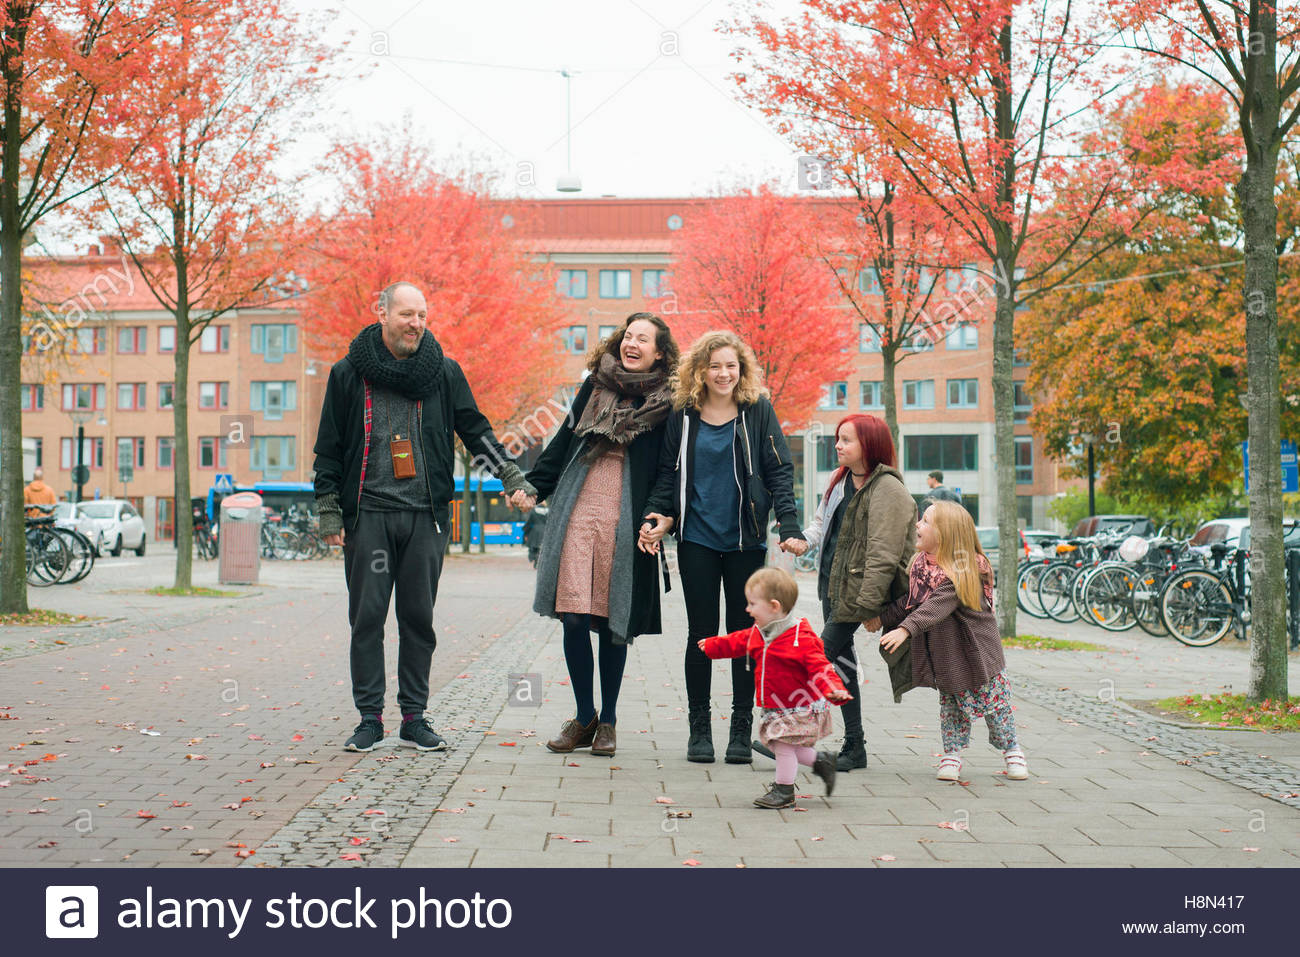 Family with four daughters (2-3, 4-5, 10-11, 16-17) in street - Stock Image